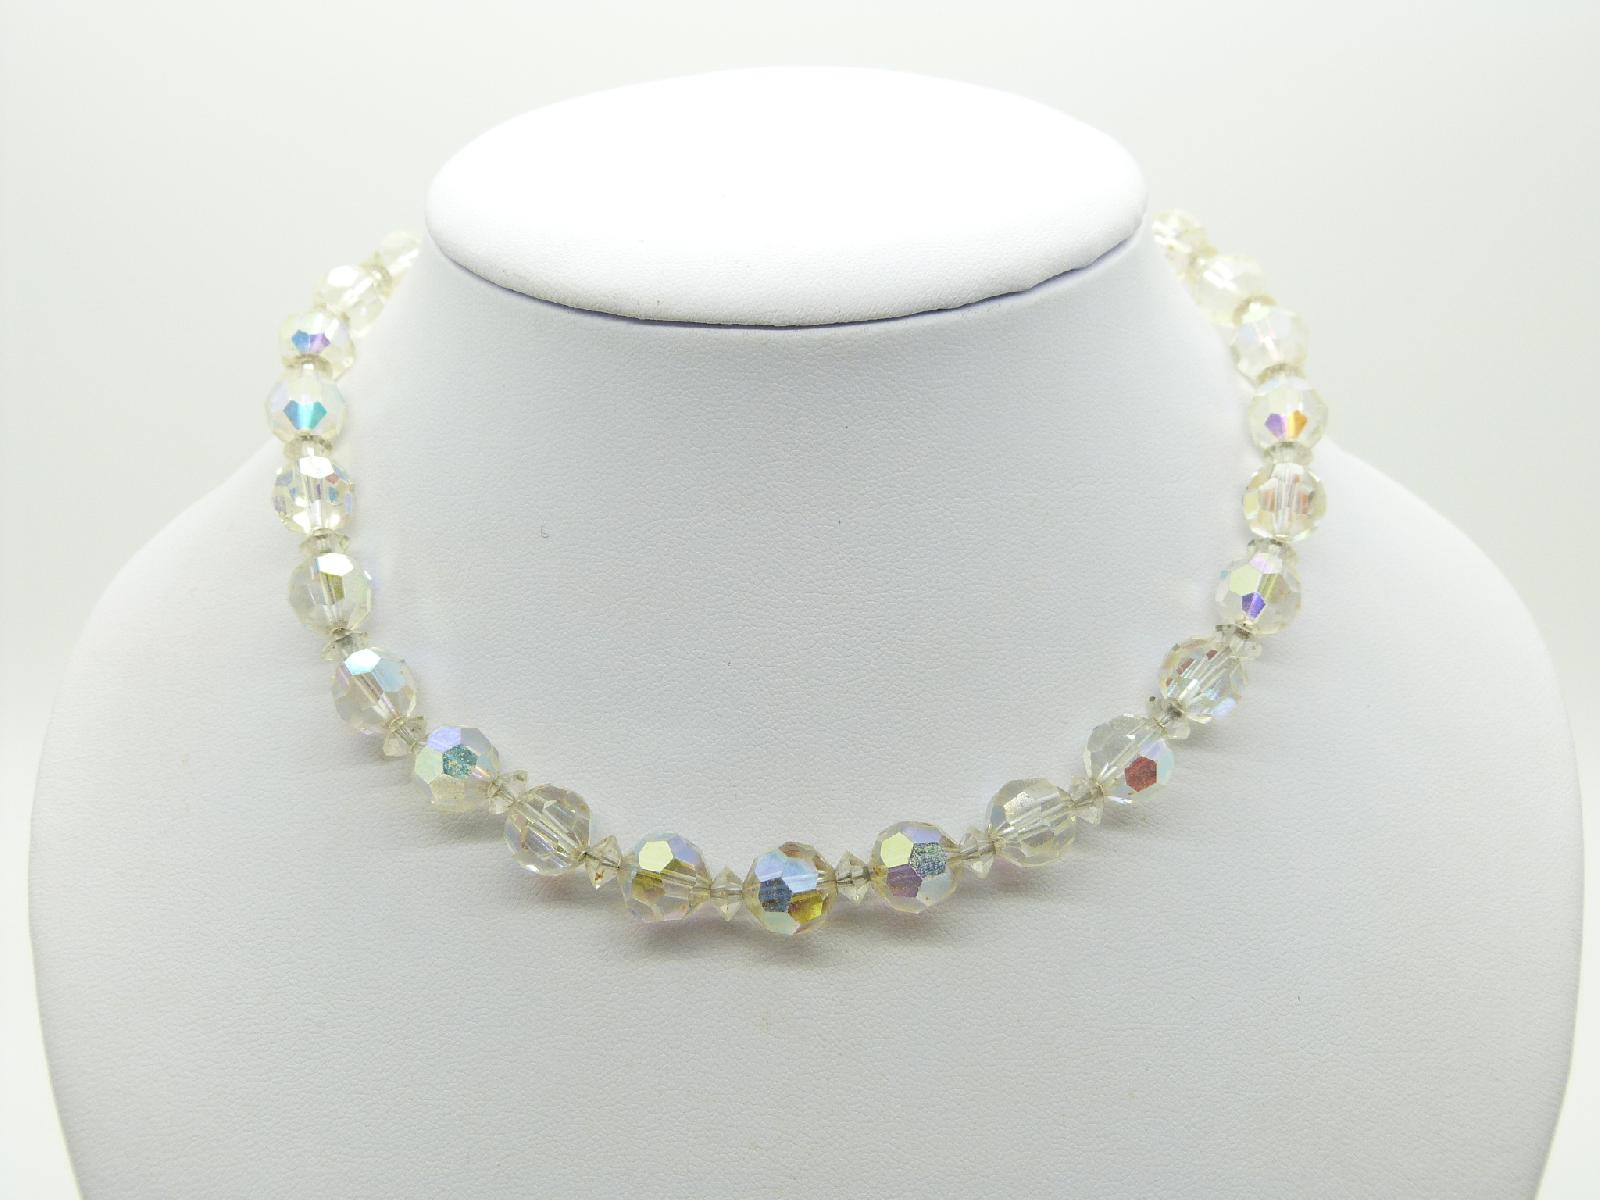 Vintage 50s Sparkling AB Crystal Glass Bead Necklace Super! 42cms